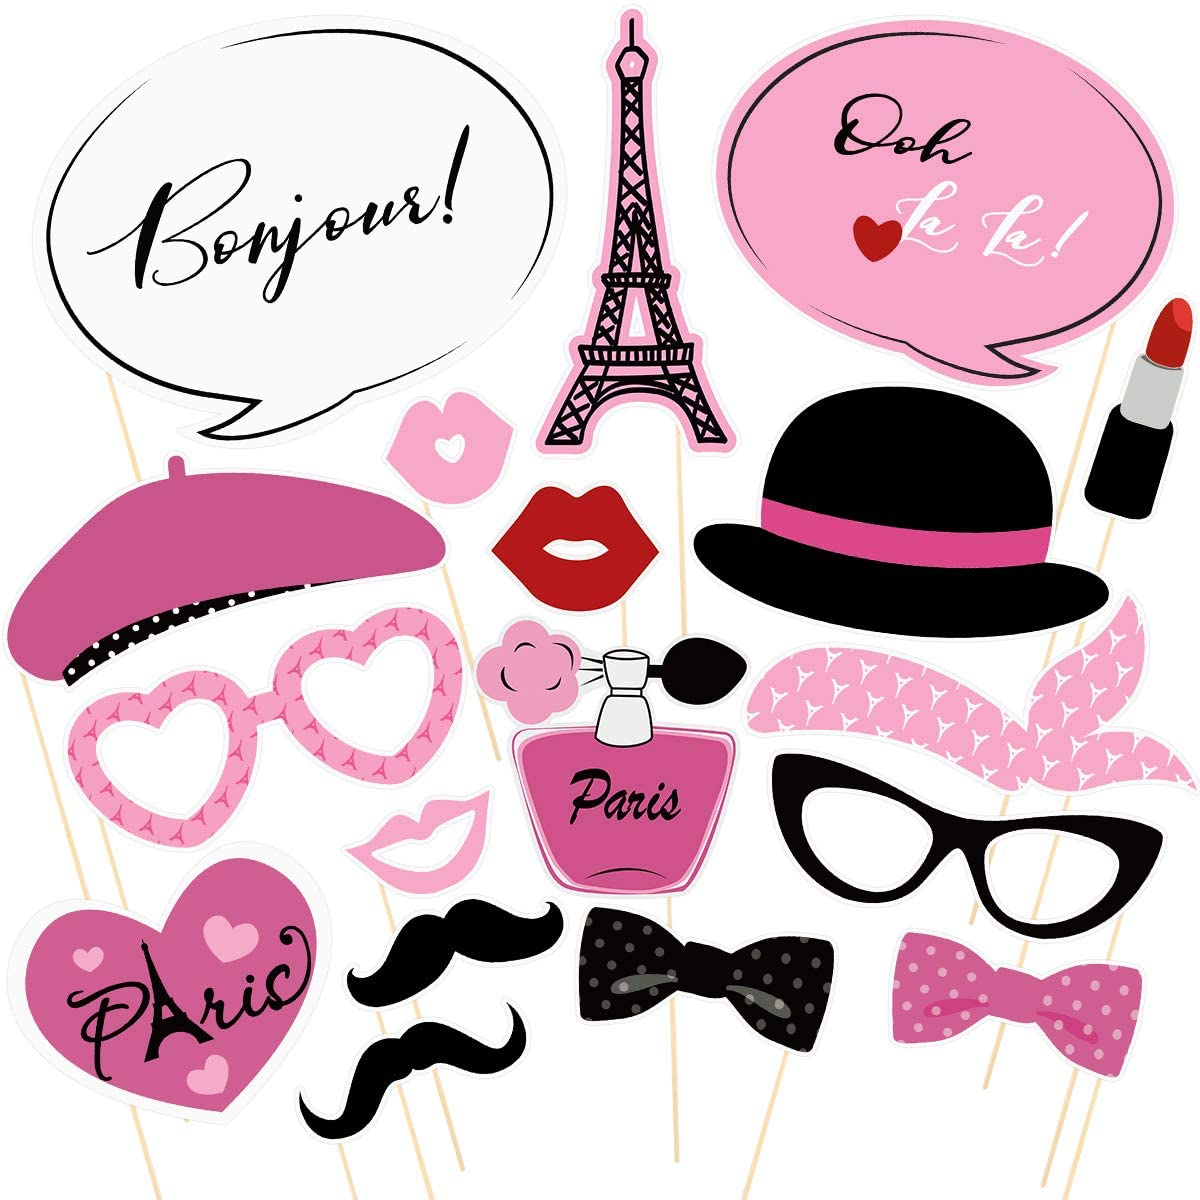 Amosfun Paris Photo Props Paris Party Photo Booth Props Kit Paris Temática Decoración French Photo Booth Props, Torre Eiffel, oh la la Party Favors 18PCS